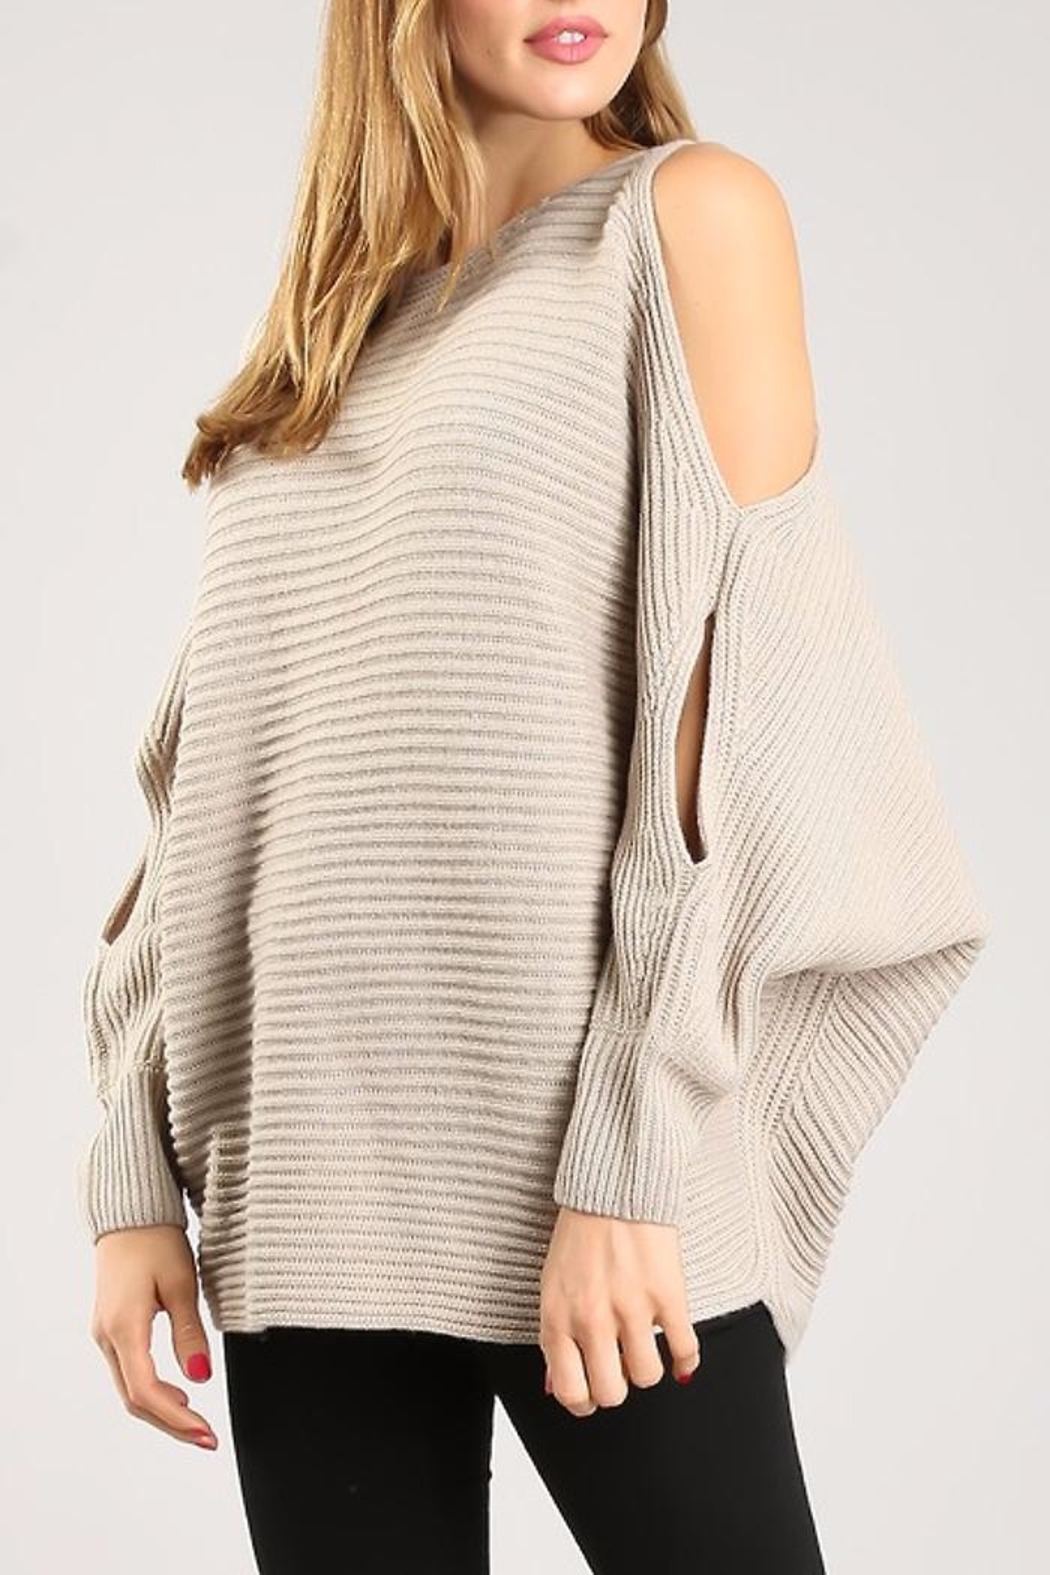 People Outfitter Ever Beautiful Sweater - Front Full Image